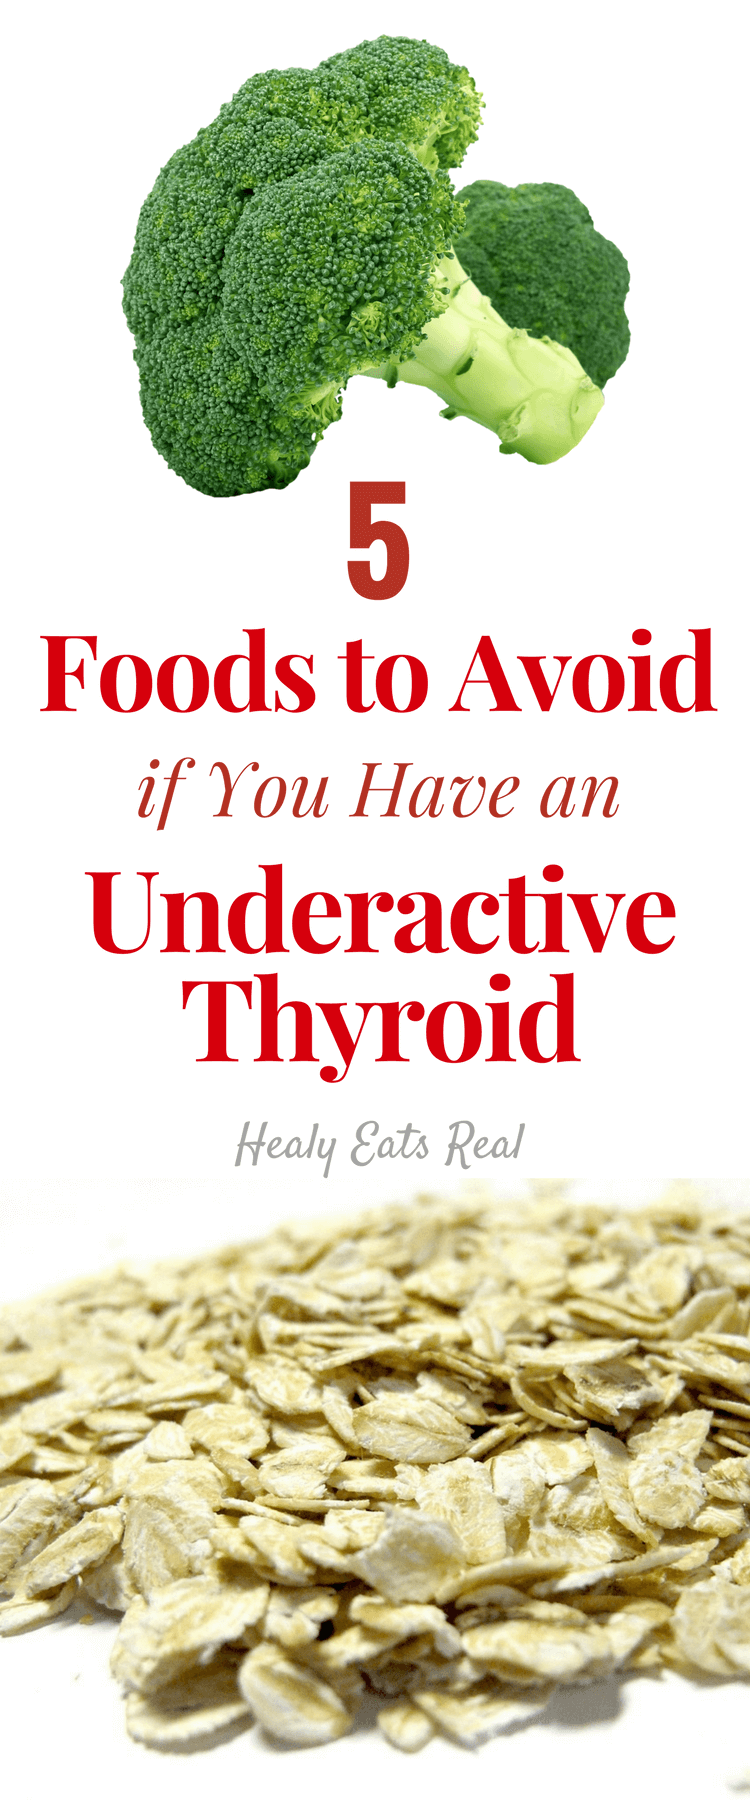 5 Foods to Avoid For An Underactive Thyroid Diet- The right healthy underactive thyroid diet that helps with your symptoms can be tough to find. The secret to improve your hypothyroidism and your overall well-being is to change your diet and avoid the foods that are causing the most harm. #thyroid #hypothyroidism #diet